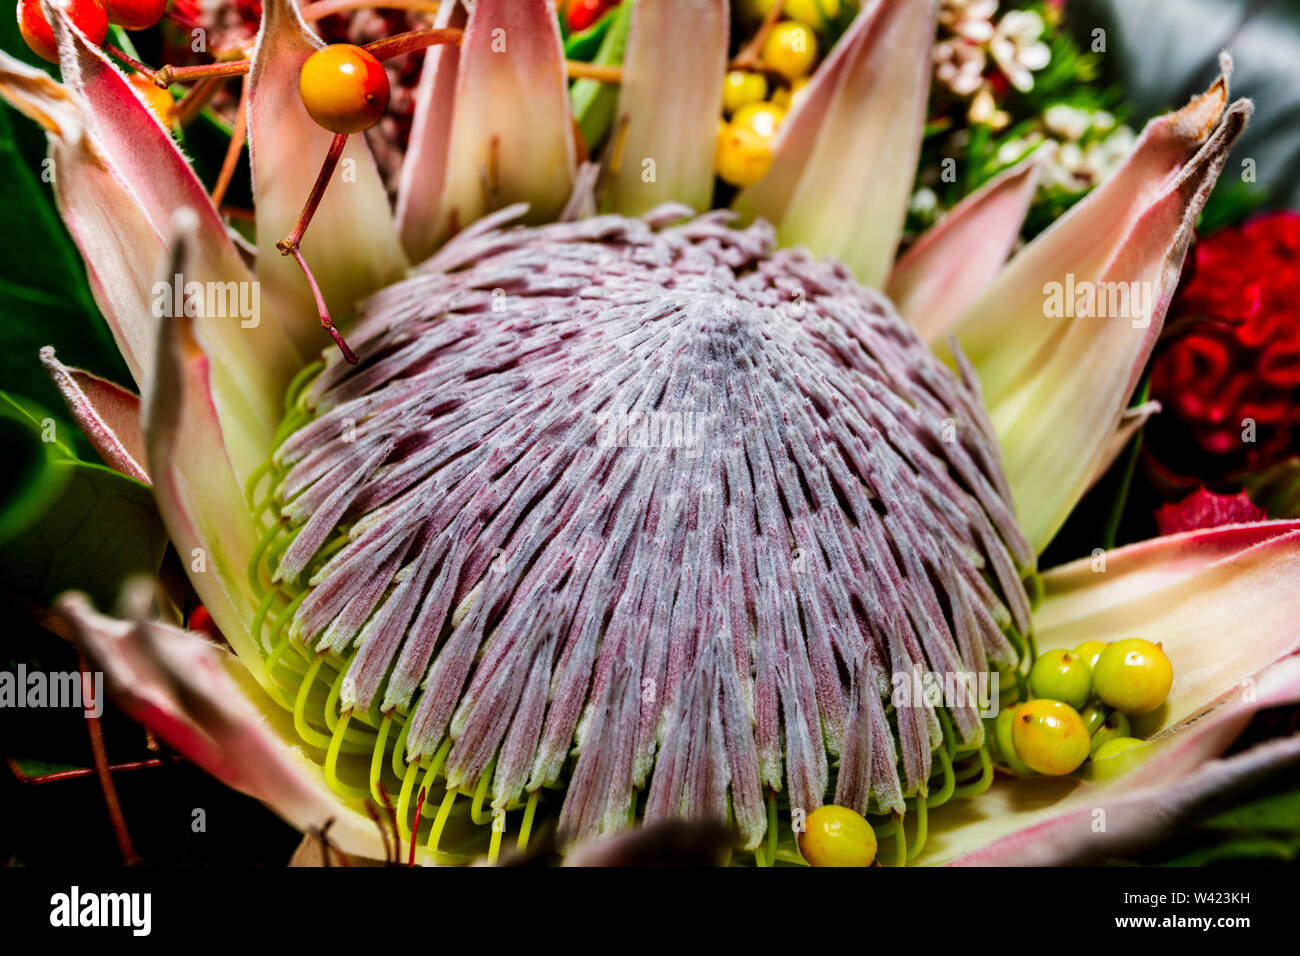 King Protea flower close up like a lotus and calls the national flower of Africa with a huge stigma around the fruits - Stock Image